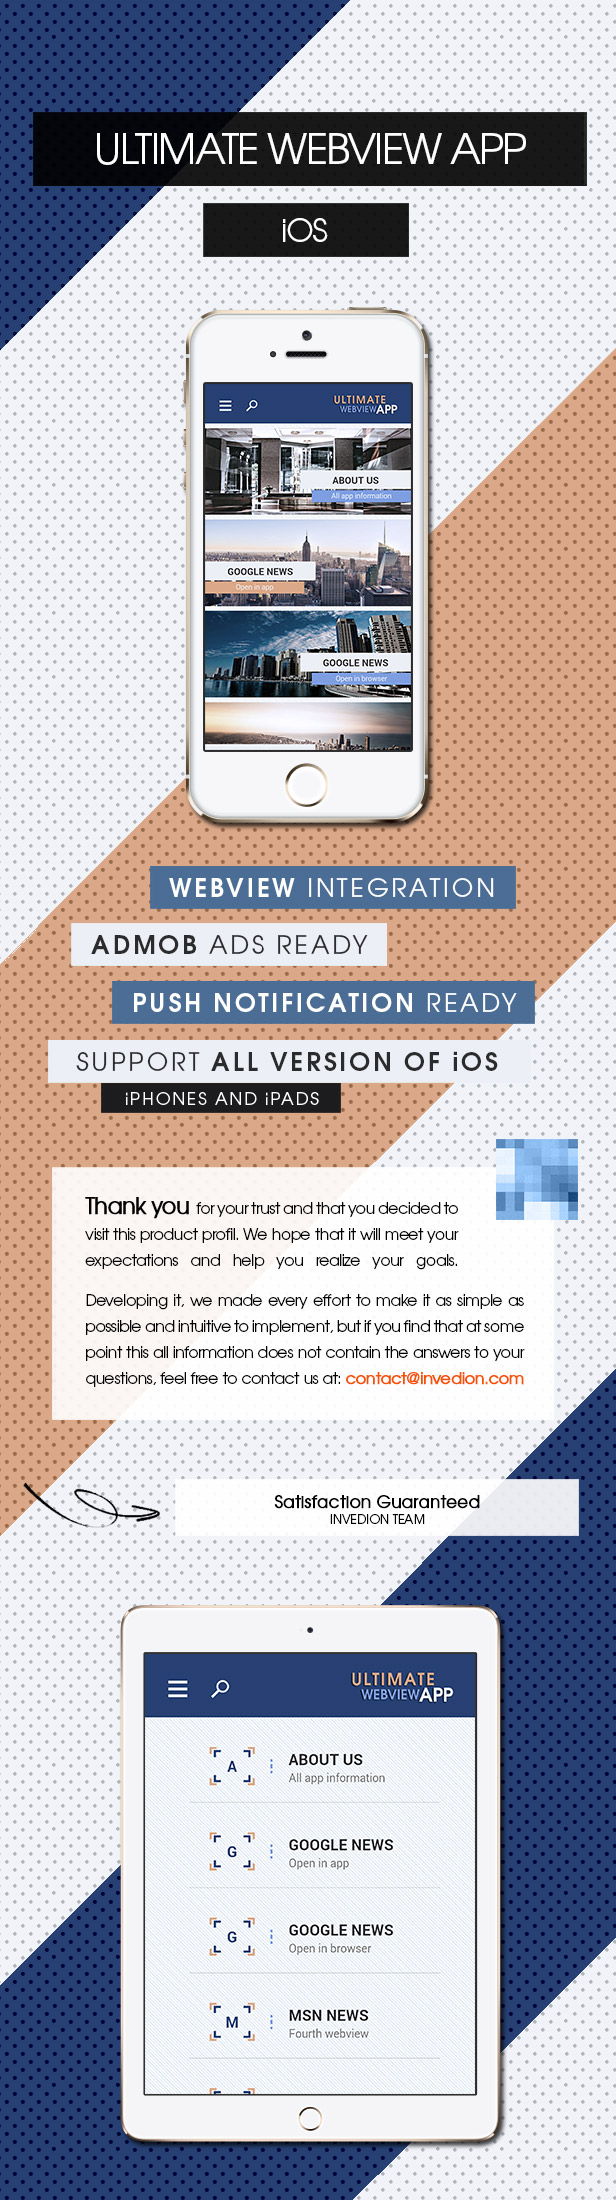 Ultimate Webview App - iOS [ AdMob & Push Notifications ] - 1